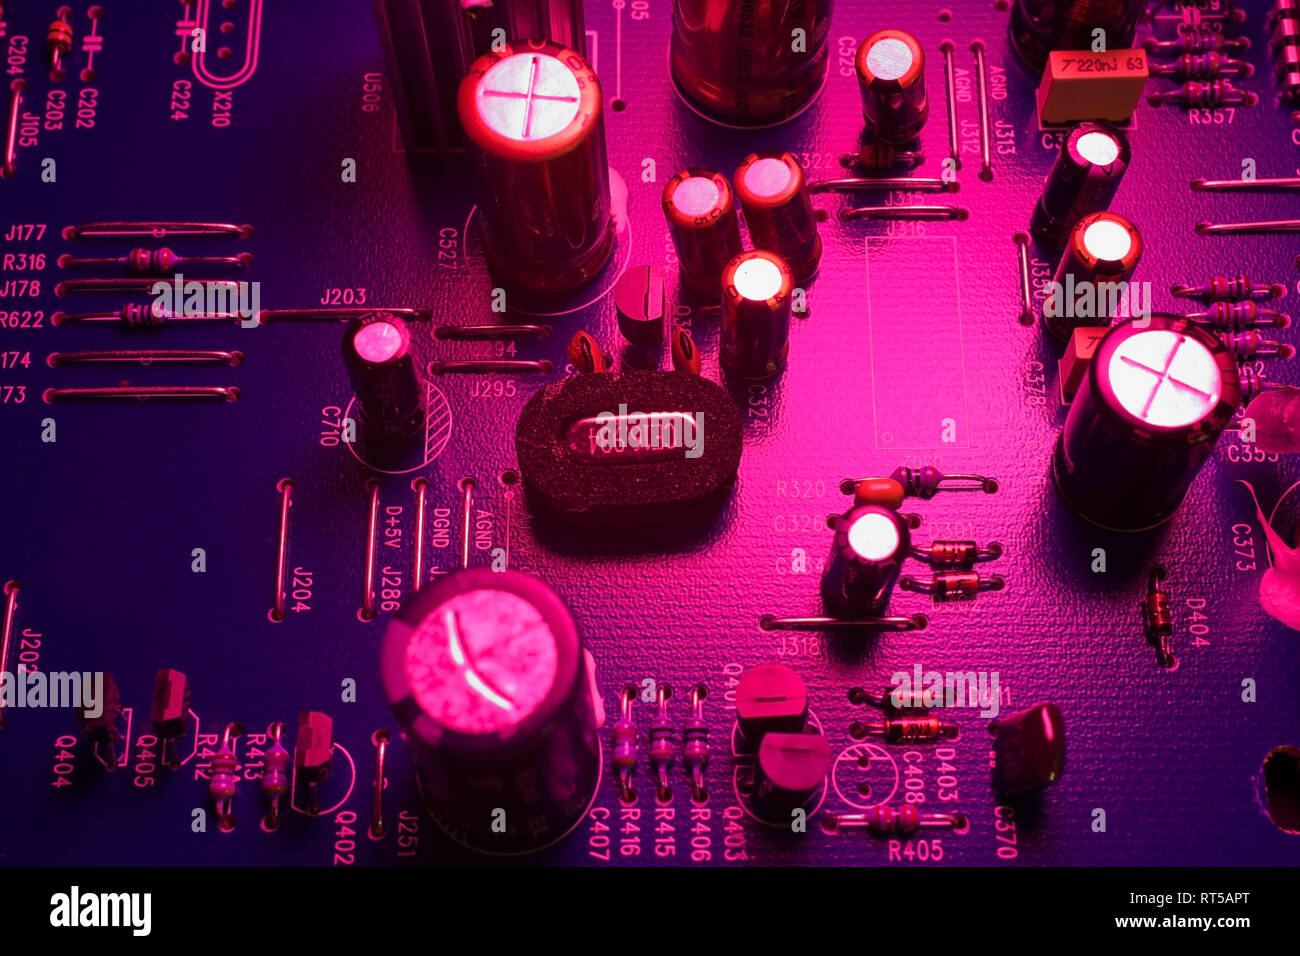 Computer circuit board, Studio Composition. - Stock Image